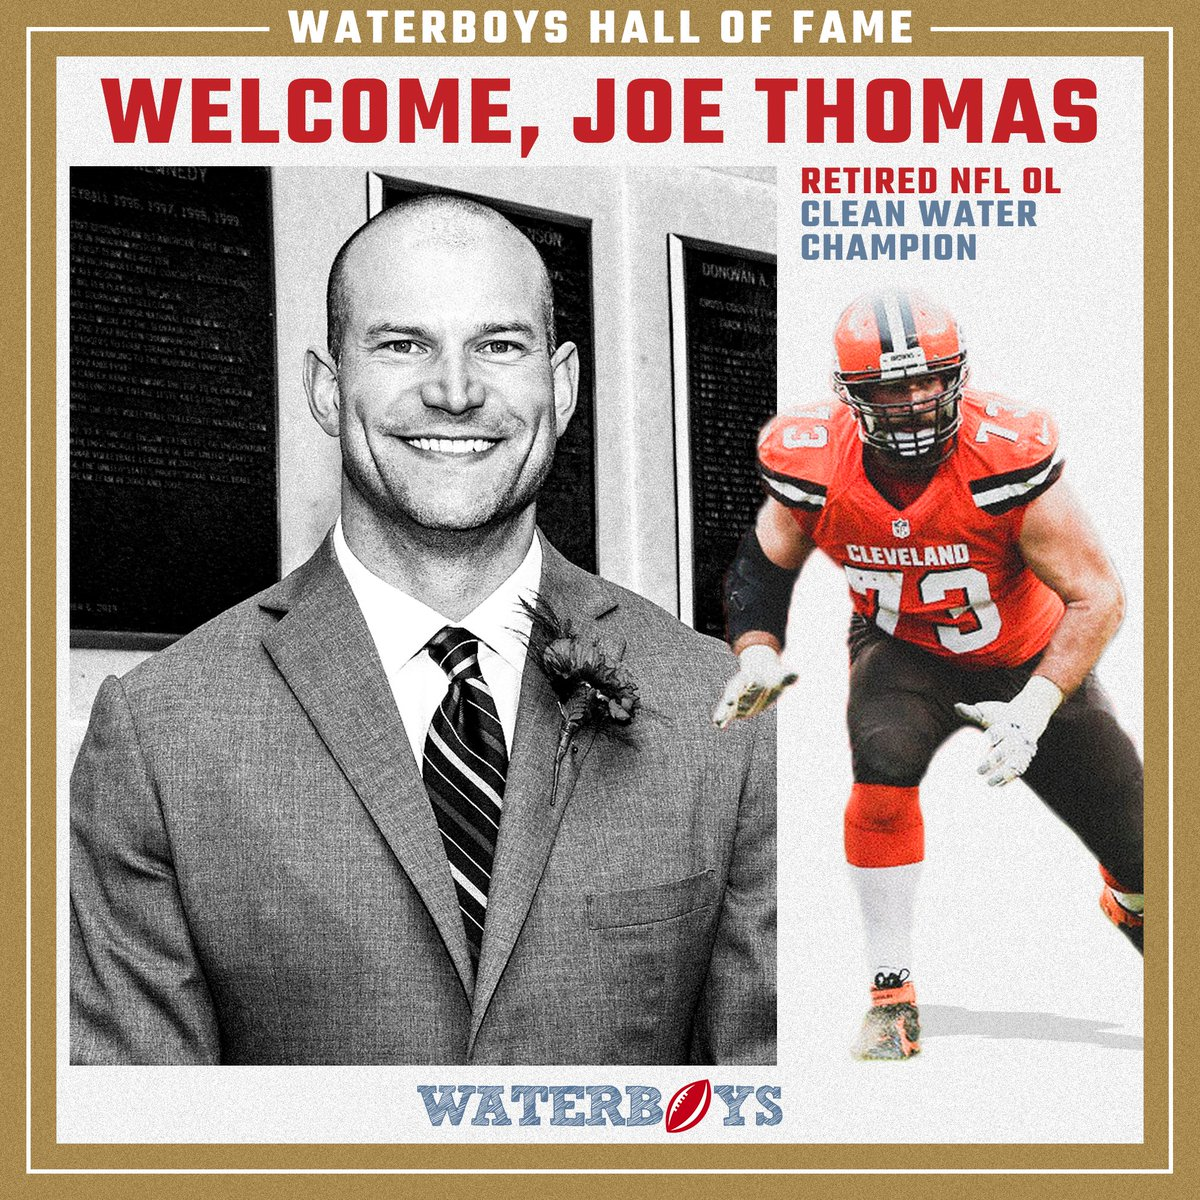 We're thrilled to welcome our newest teammate: @Browns legend @joethomas73! Joe, regarded as one of the best offensive linemen of all time, joins our new team of Waterboys Hall-of-Famers, committed to using his platform to raise money for communities in need. Welcome, Joe!